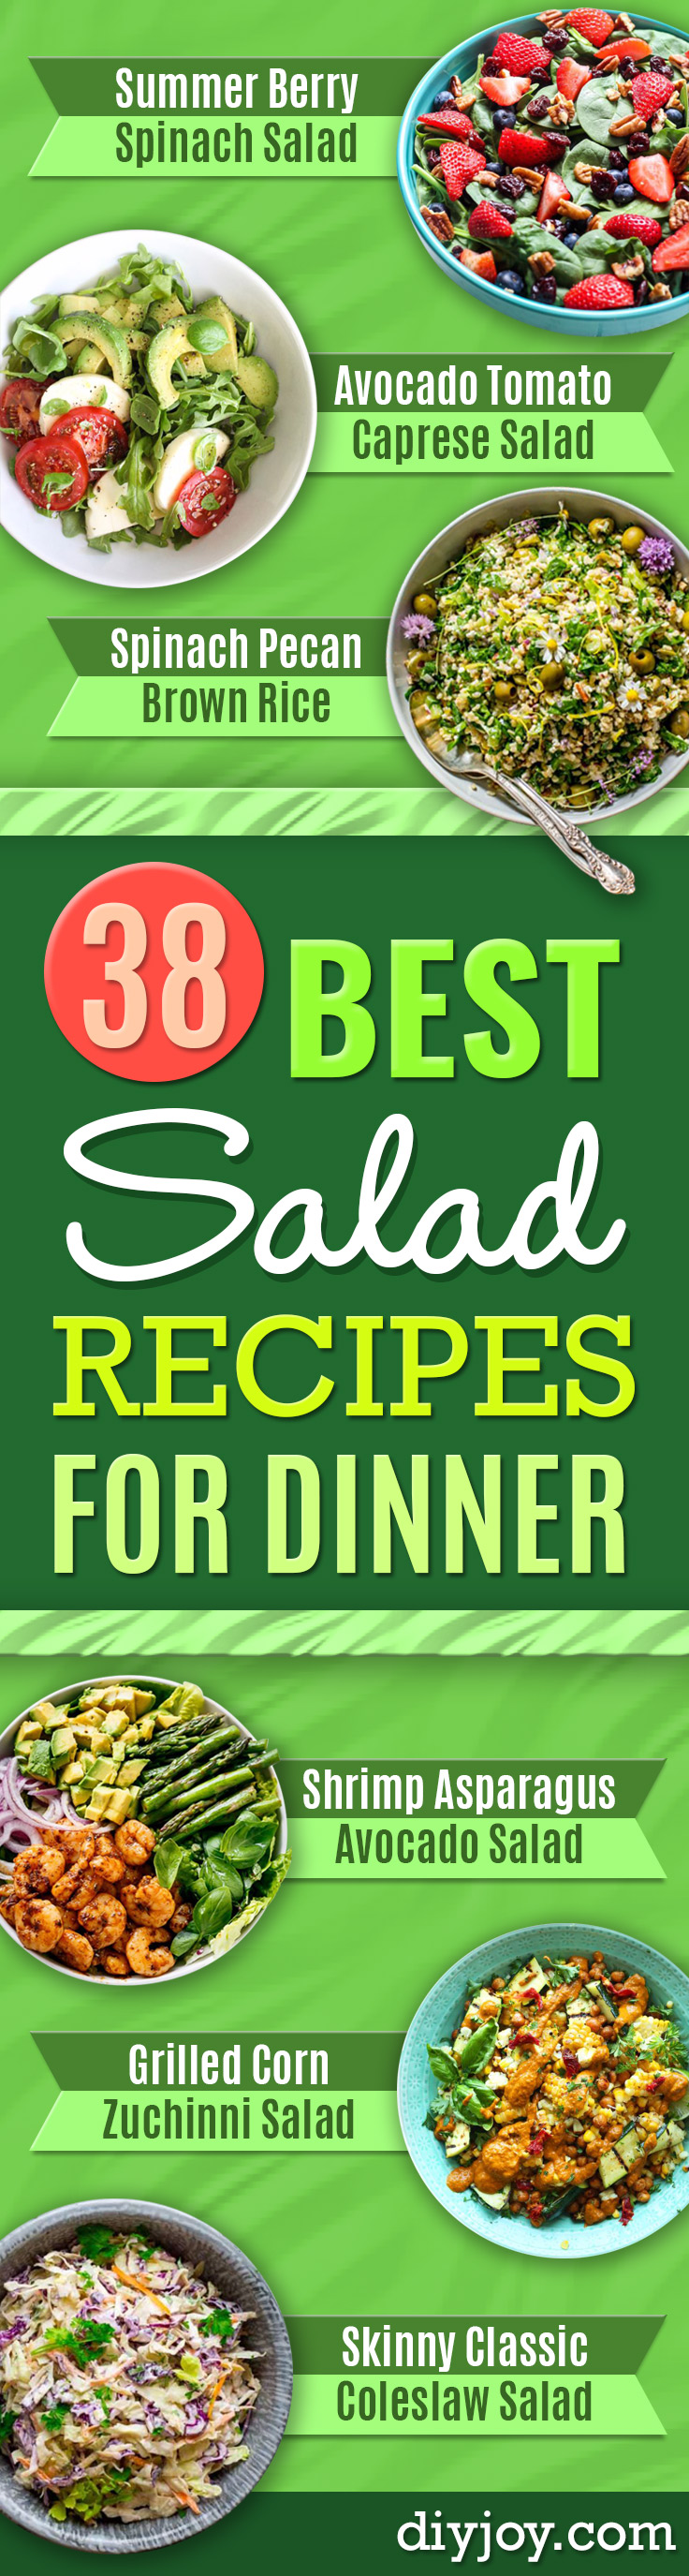 Best Dinner Salad Recipes - Easy Salads to Make for Quick and Healthy Dinners - Healthy Chicken, Egg, Vegetarian, Steak and Shrimp Salad Ideas - Summer Side Dishes, Hearty Filling Meals, and Low Carb Options http://diyjoy.com/dinner-salad-recipes